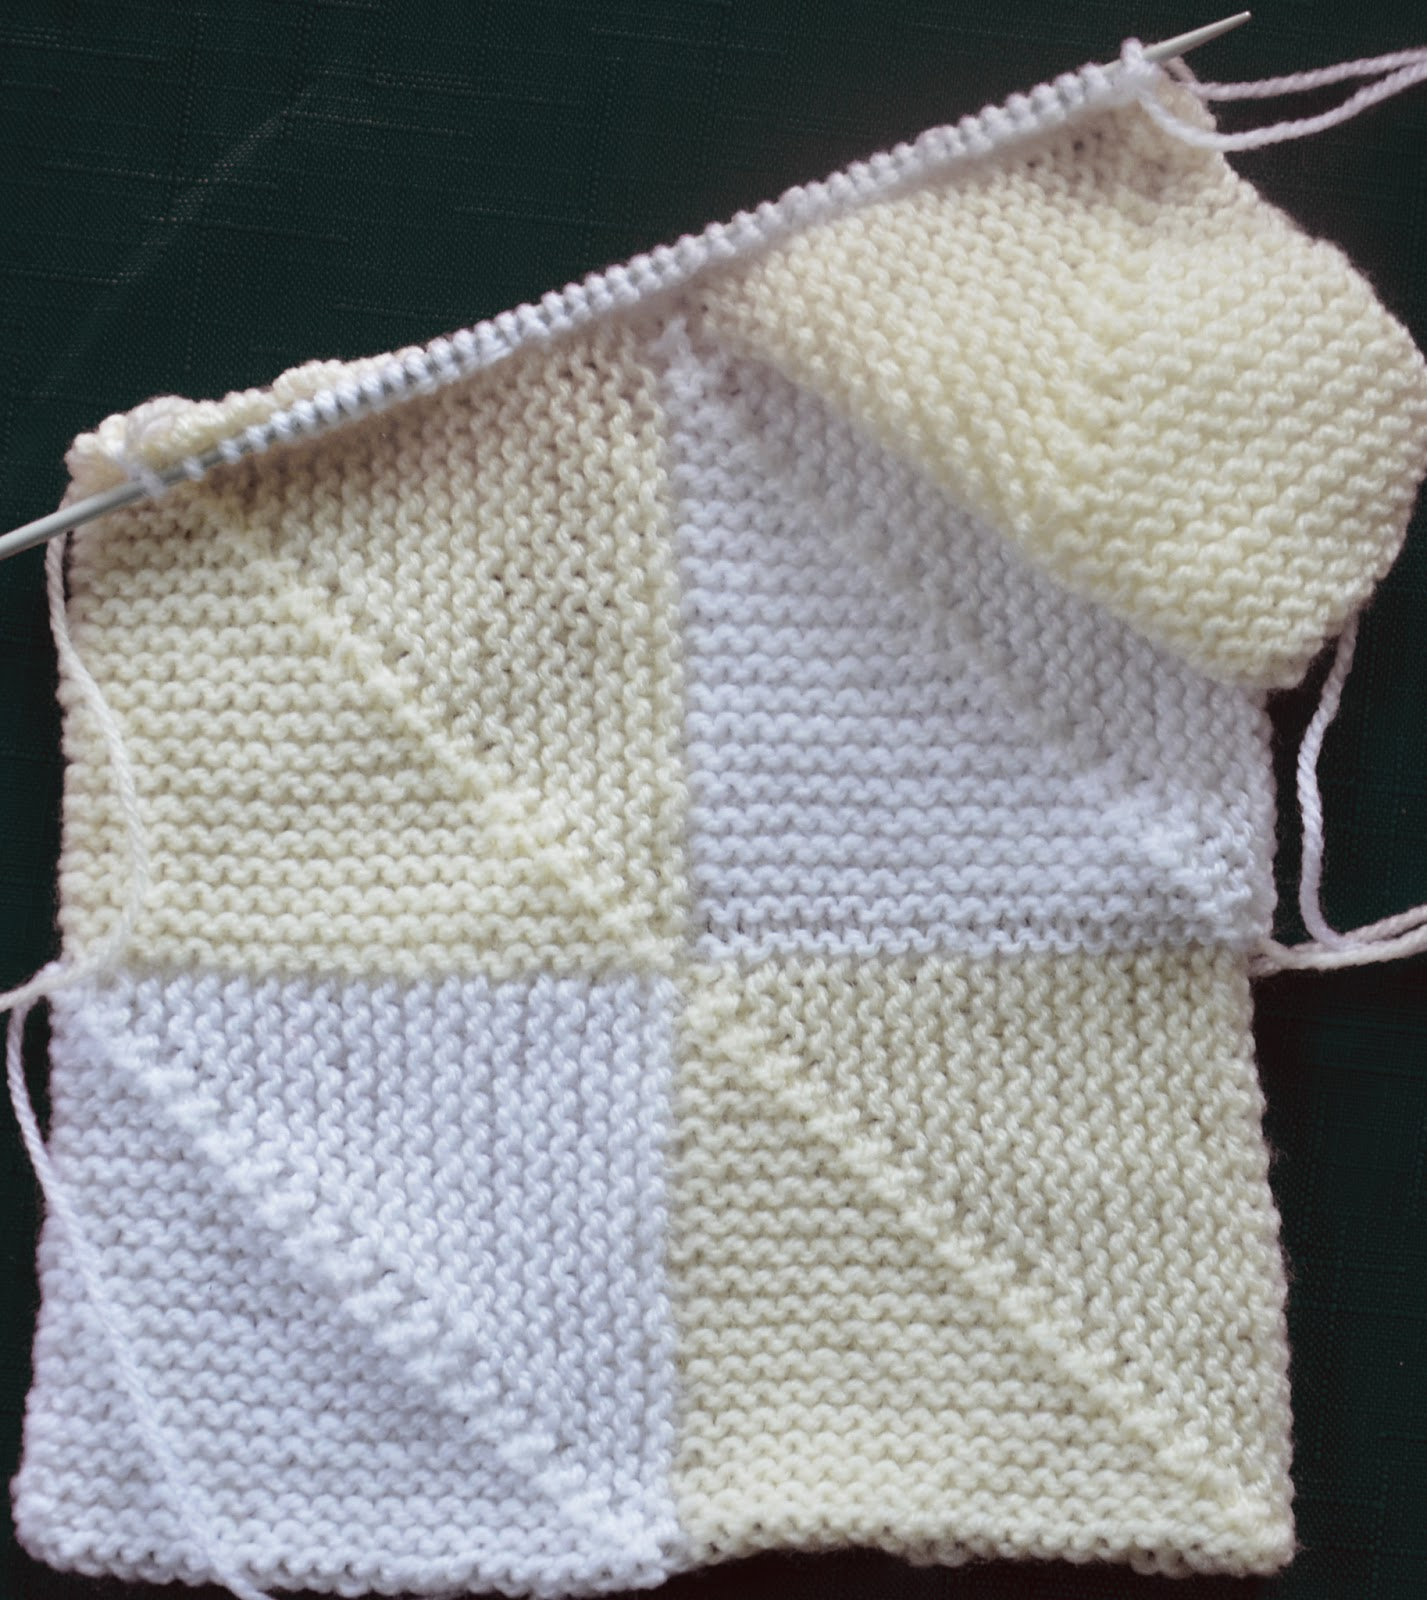 Domino Knitting Blanket Pattern : The Curious Krafter: Domino Baby Blanket